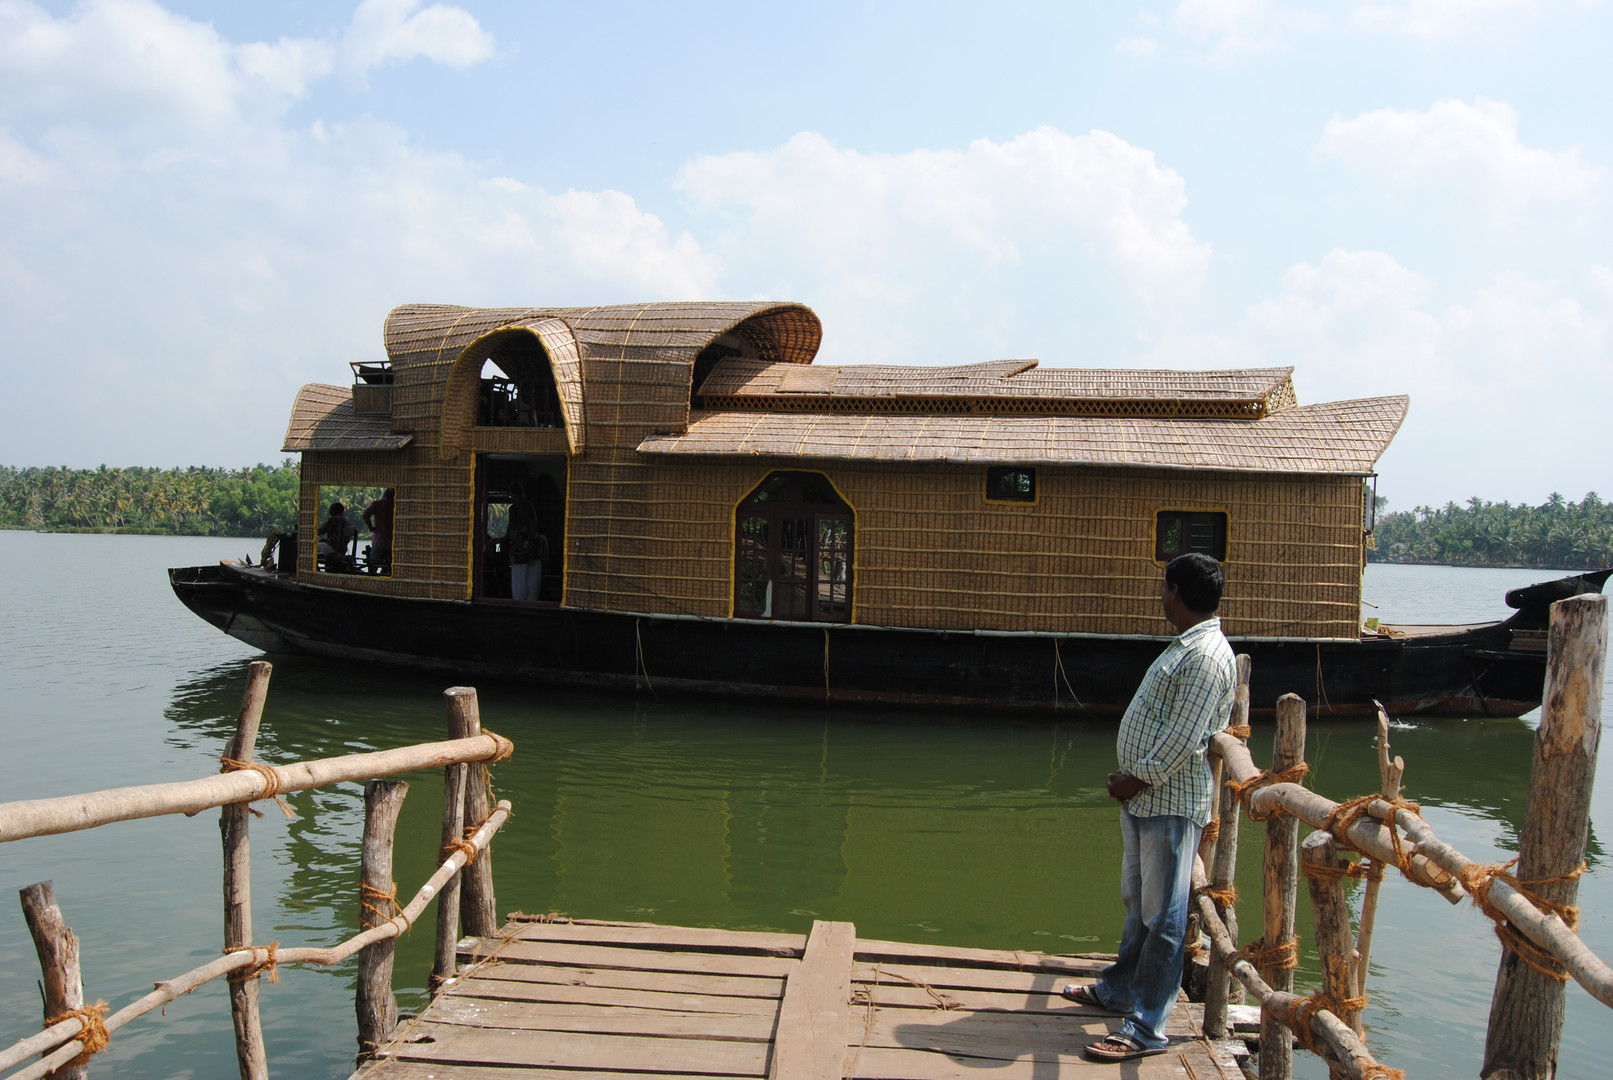 The Boat from Gurveer's Temple